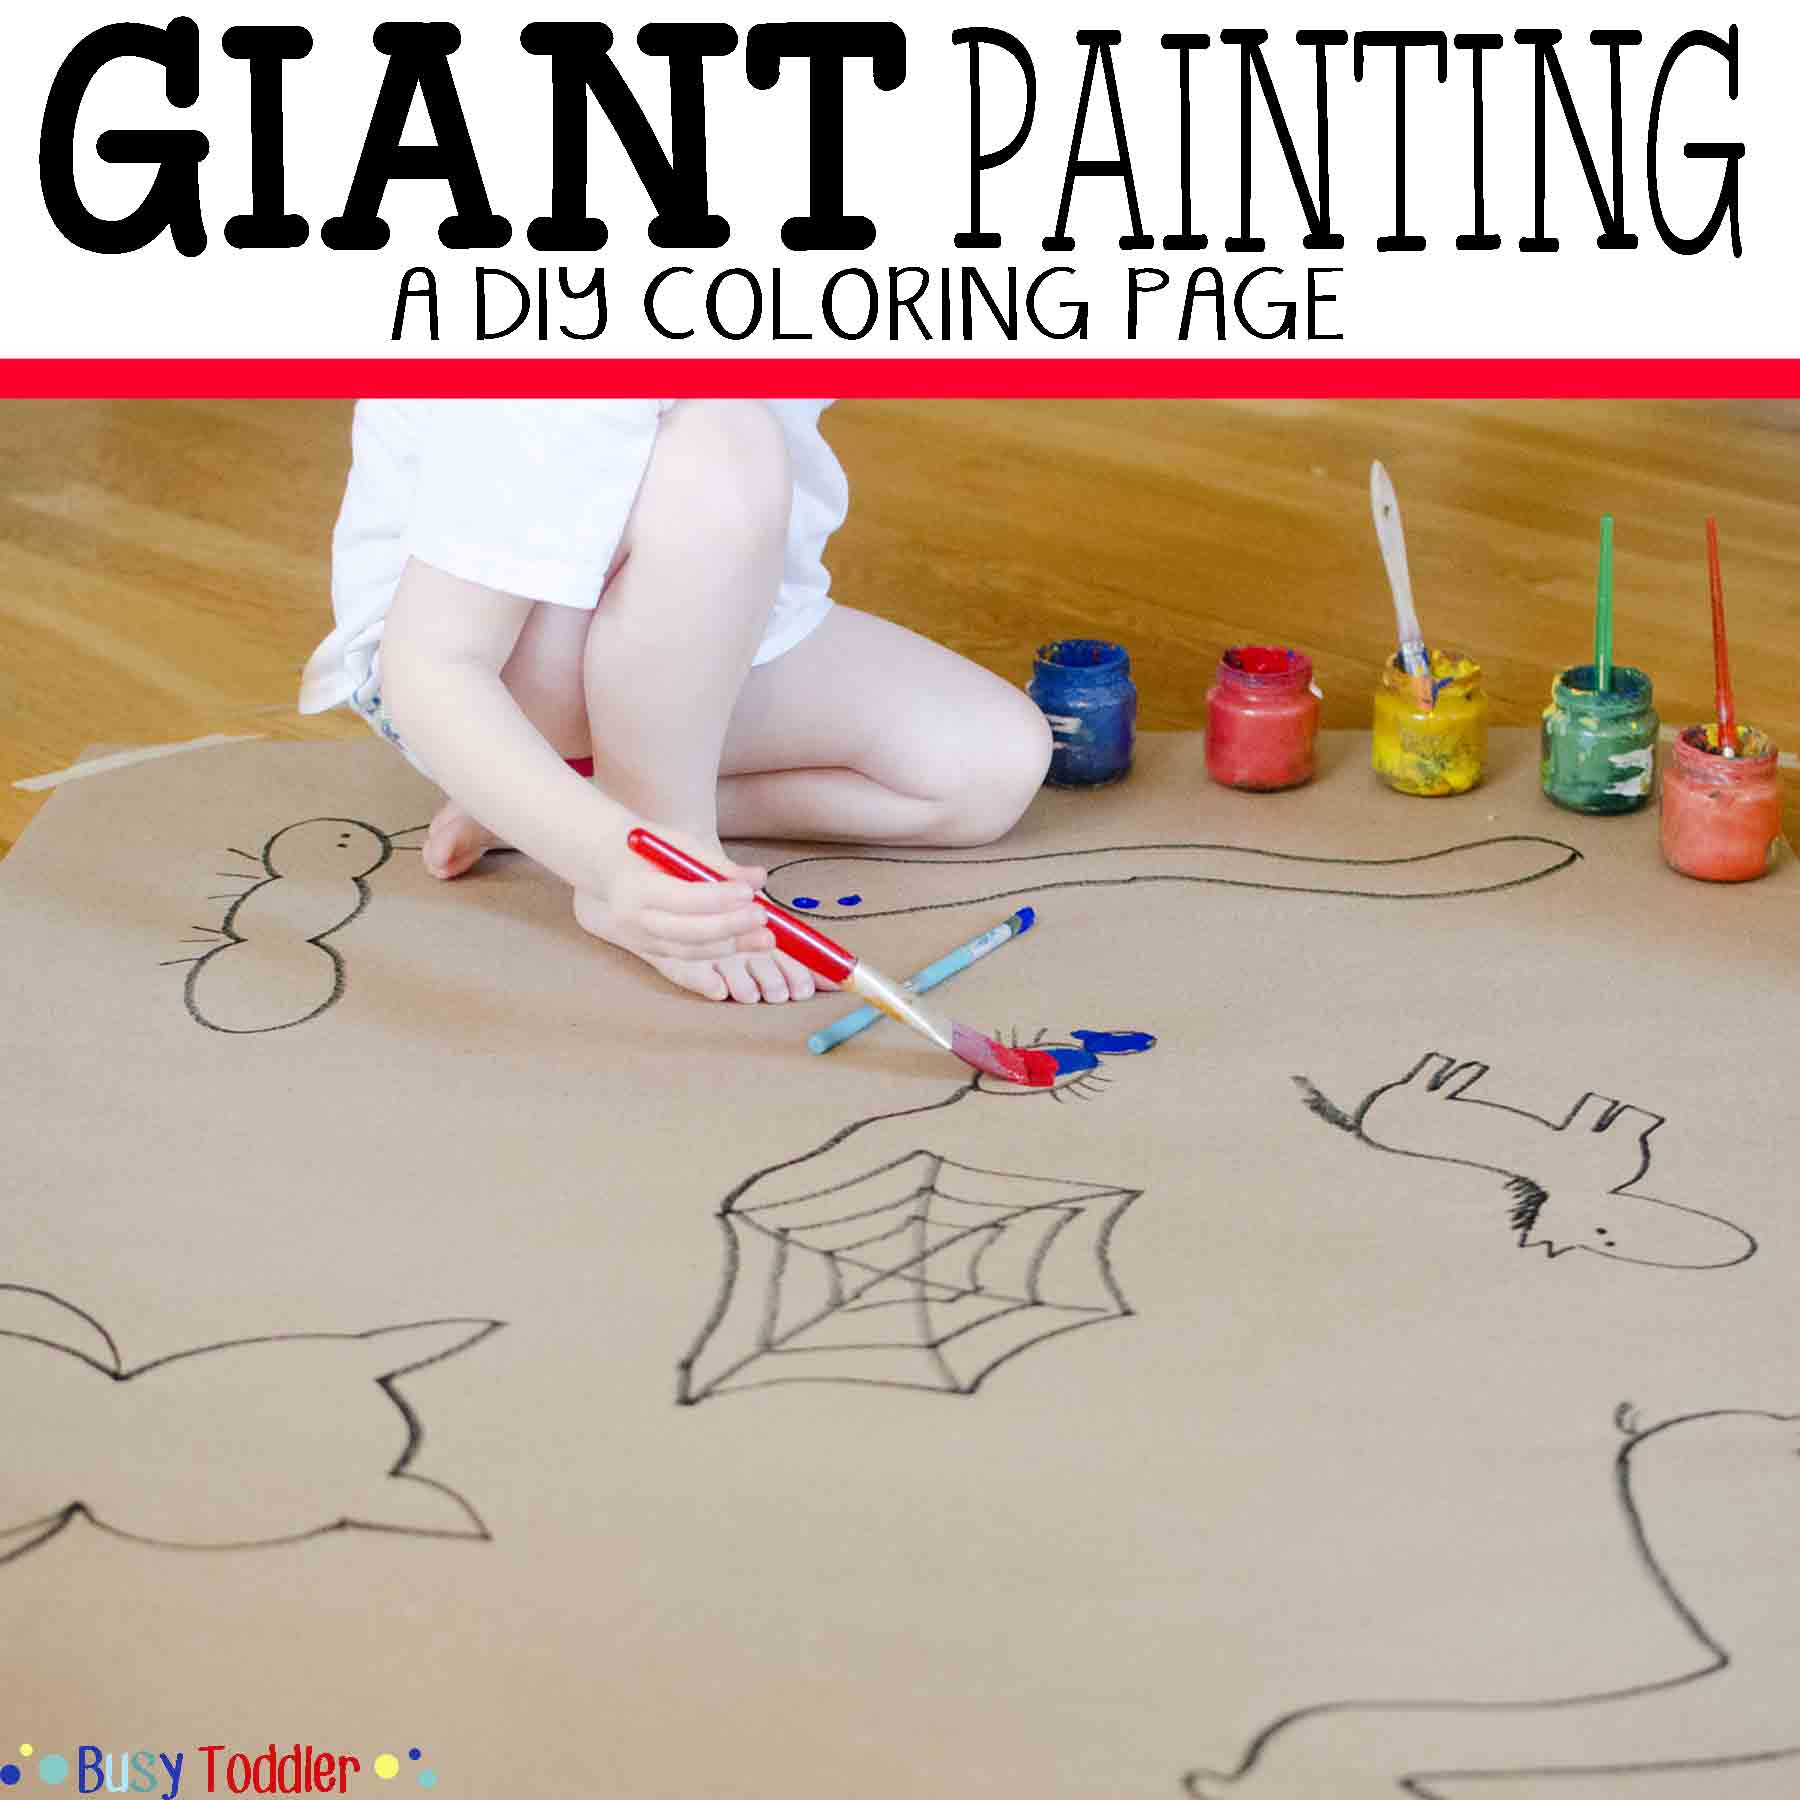 Giant Painting Art Project